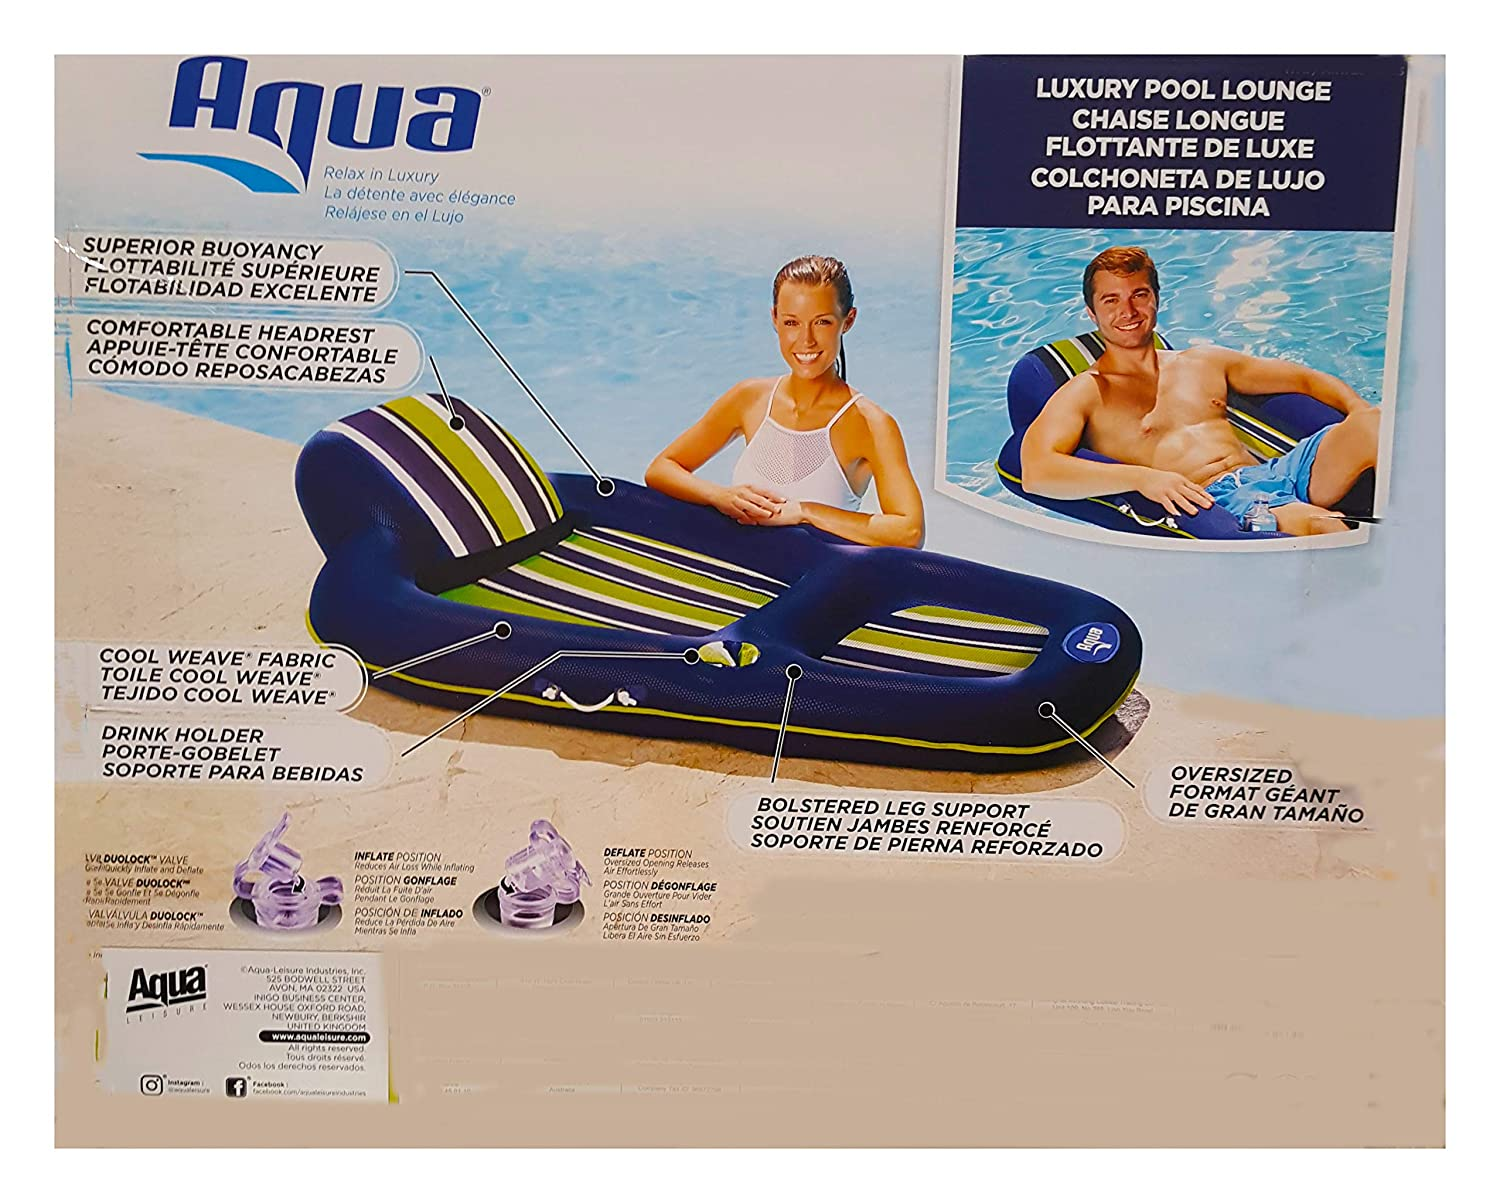 Aqua Luxury Lounger for Pool - Extra Long- Cup Holder, Superior Buoyancy, Built in Pillow, Breathable Cool Weave Fabric Extra Long 70 inches Long